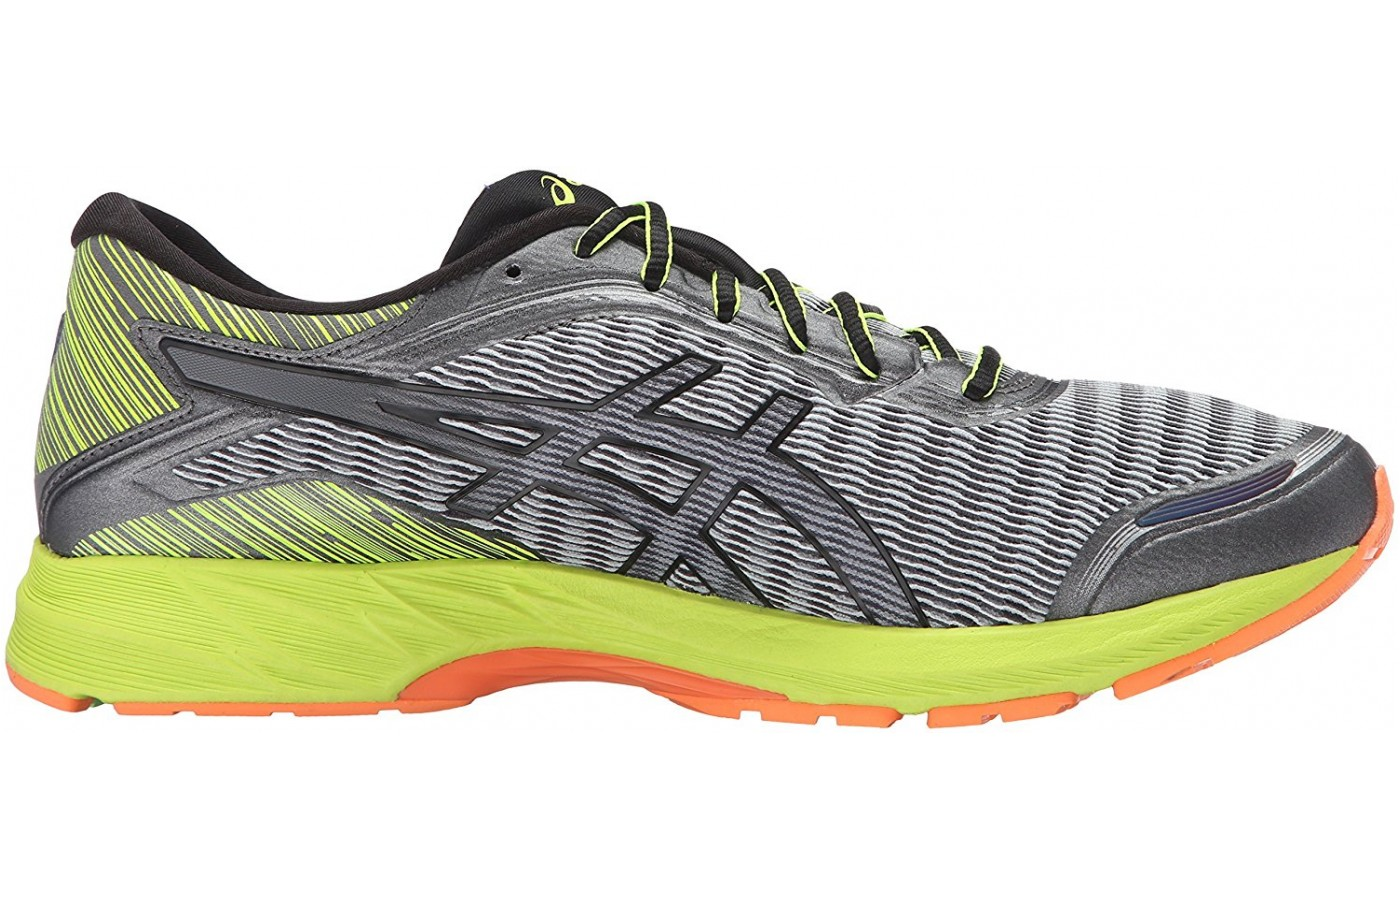 cheap for discount afbf3 377ea Asics DynaFlyte Reviewed & Tested for Performance